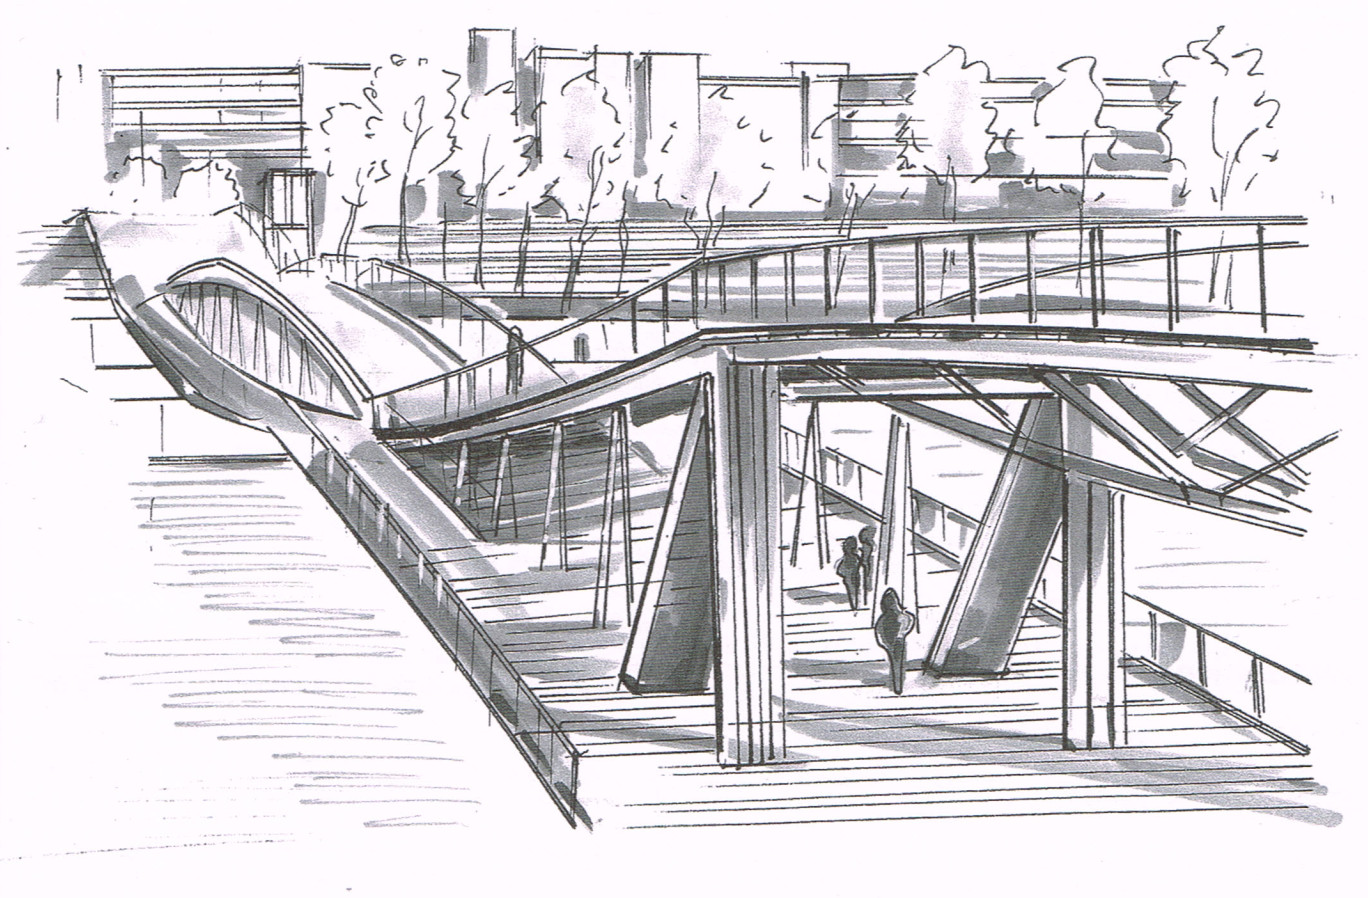 dessin d'architecture Passerelle Simone de Beauvoir Paris 13